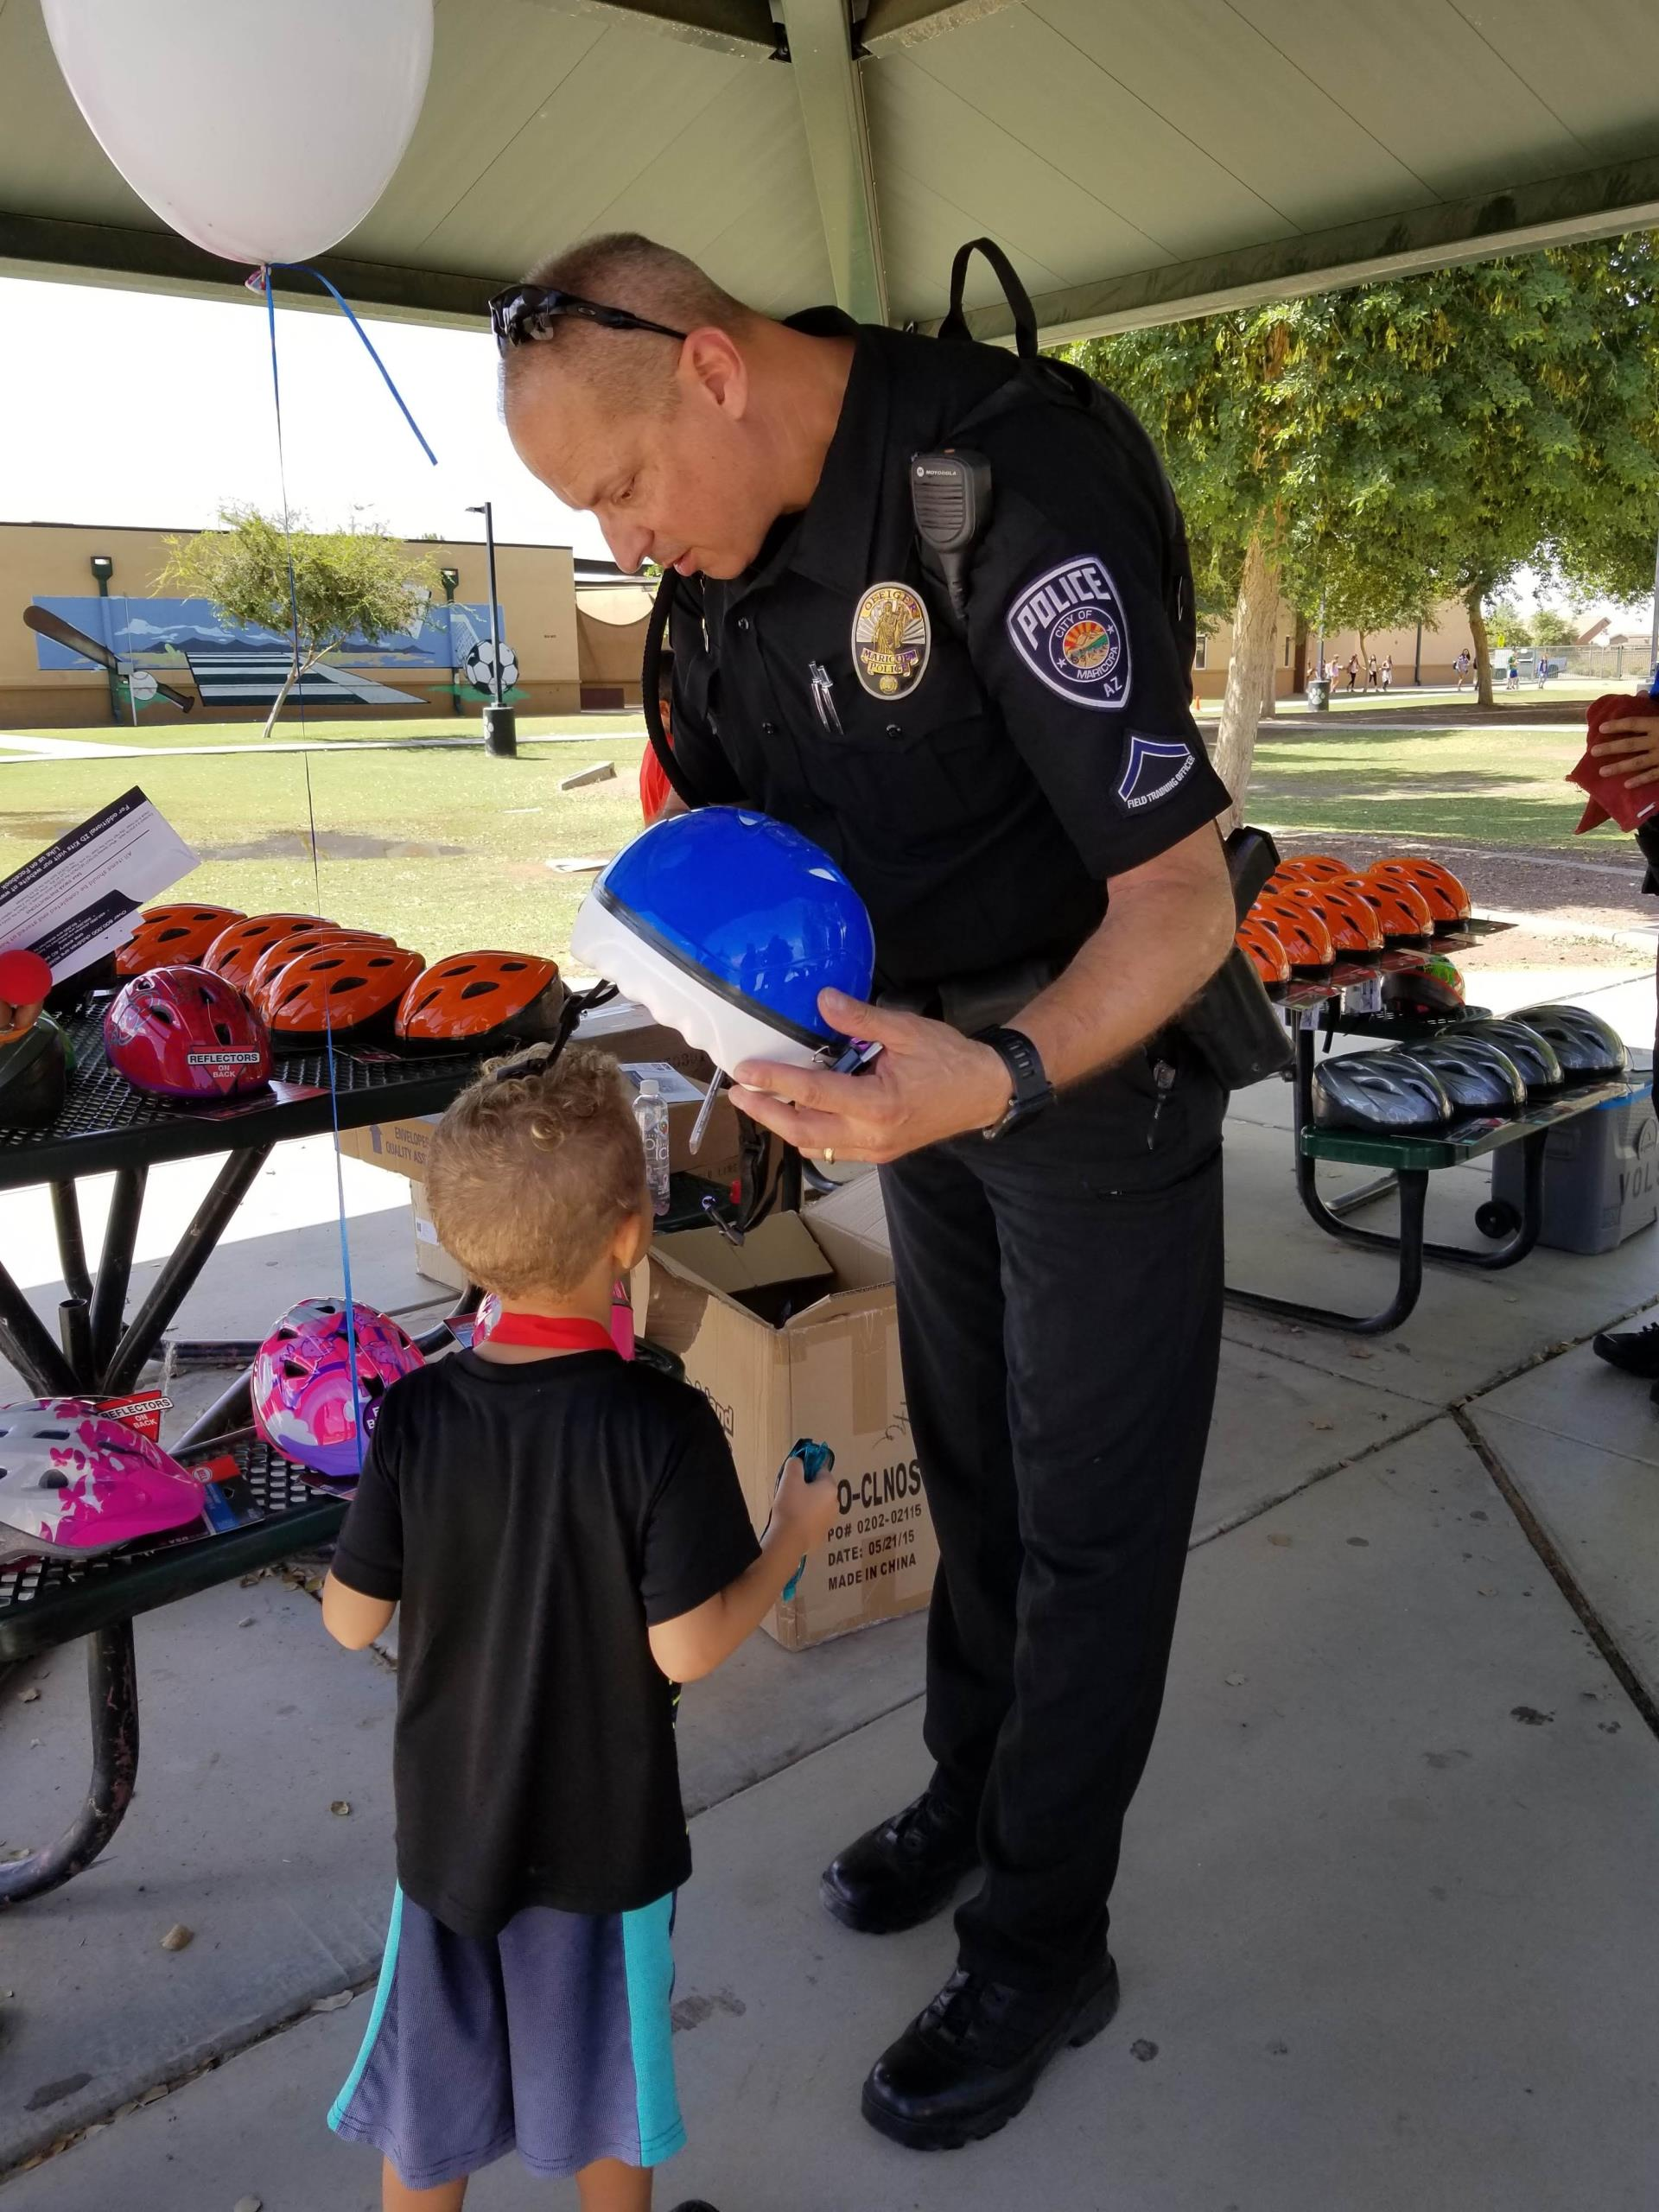 Ofc Torres fitting a bike helmet at Kids Day 2018